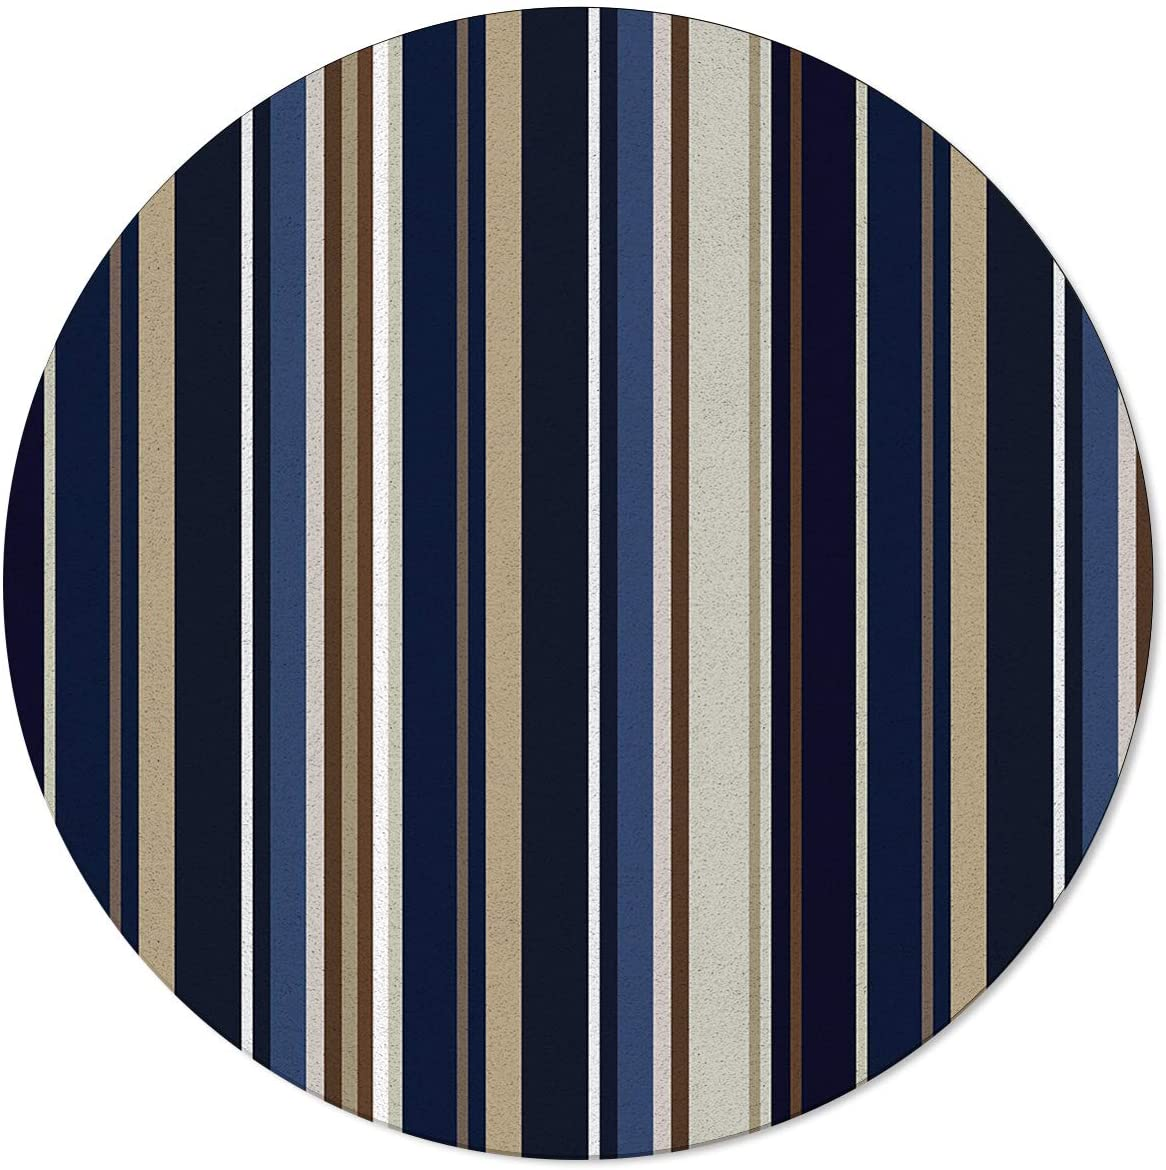 SunShine Day Modern Round Area Mats, Blue and Brown Geometric Stripe Pattern Large Rugs for Nursery Kids, Floor Mats for Any Entrance Or Exit 3 Feet